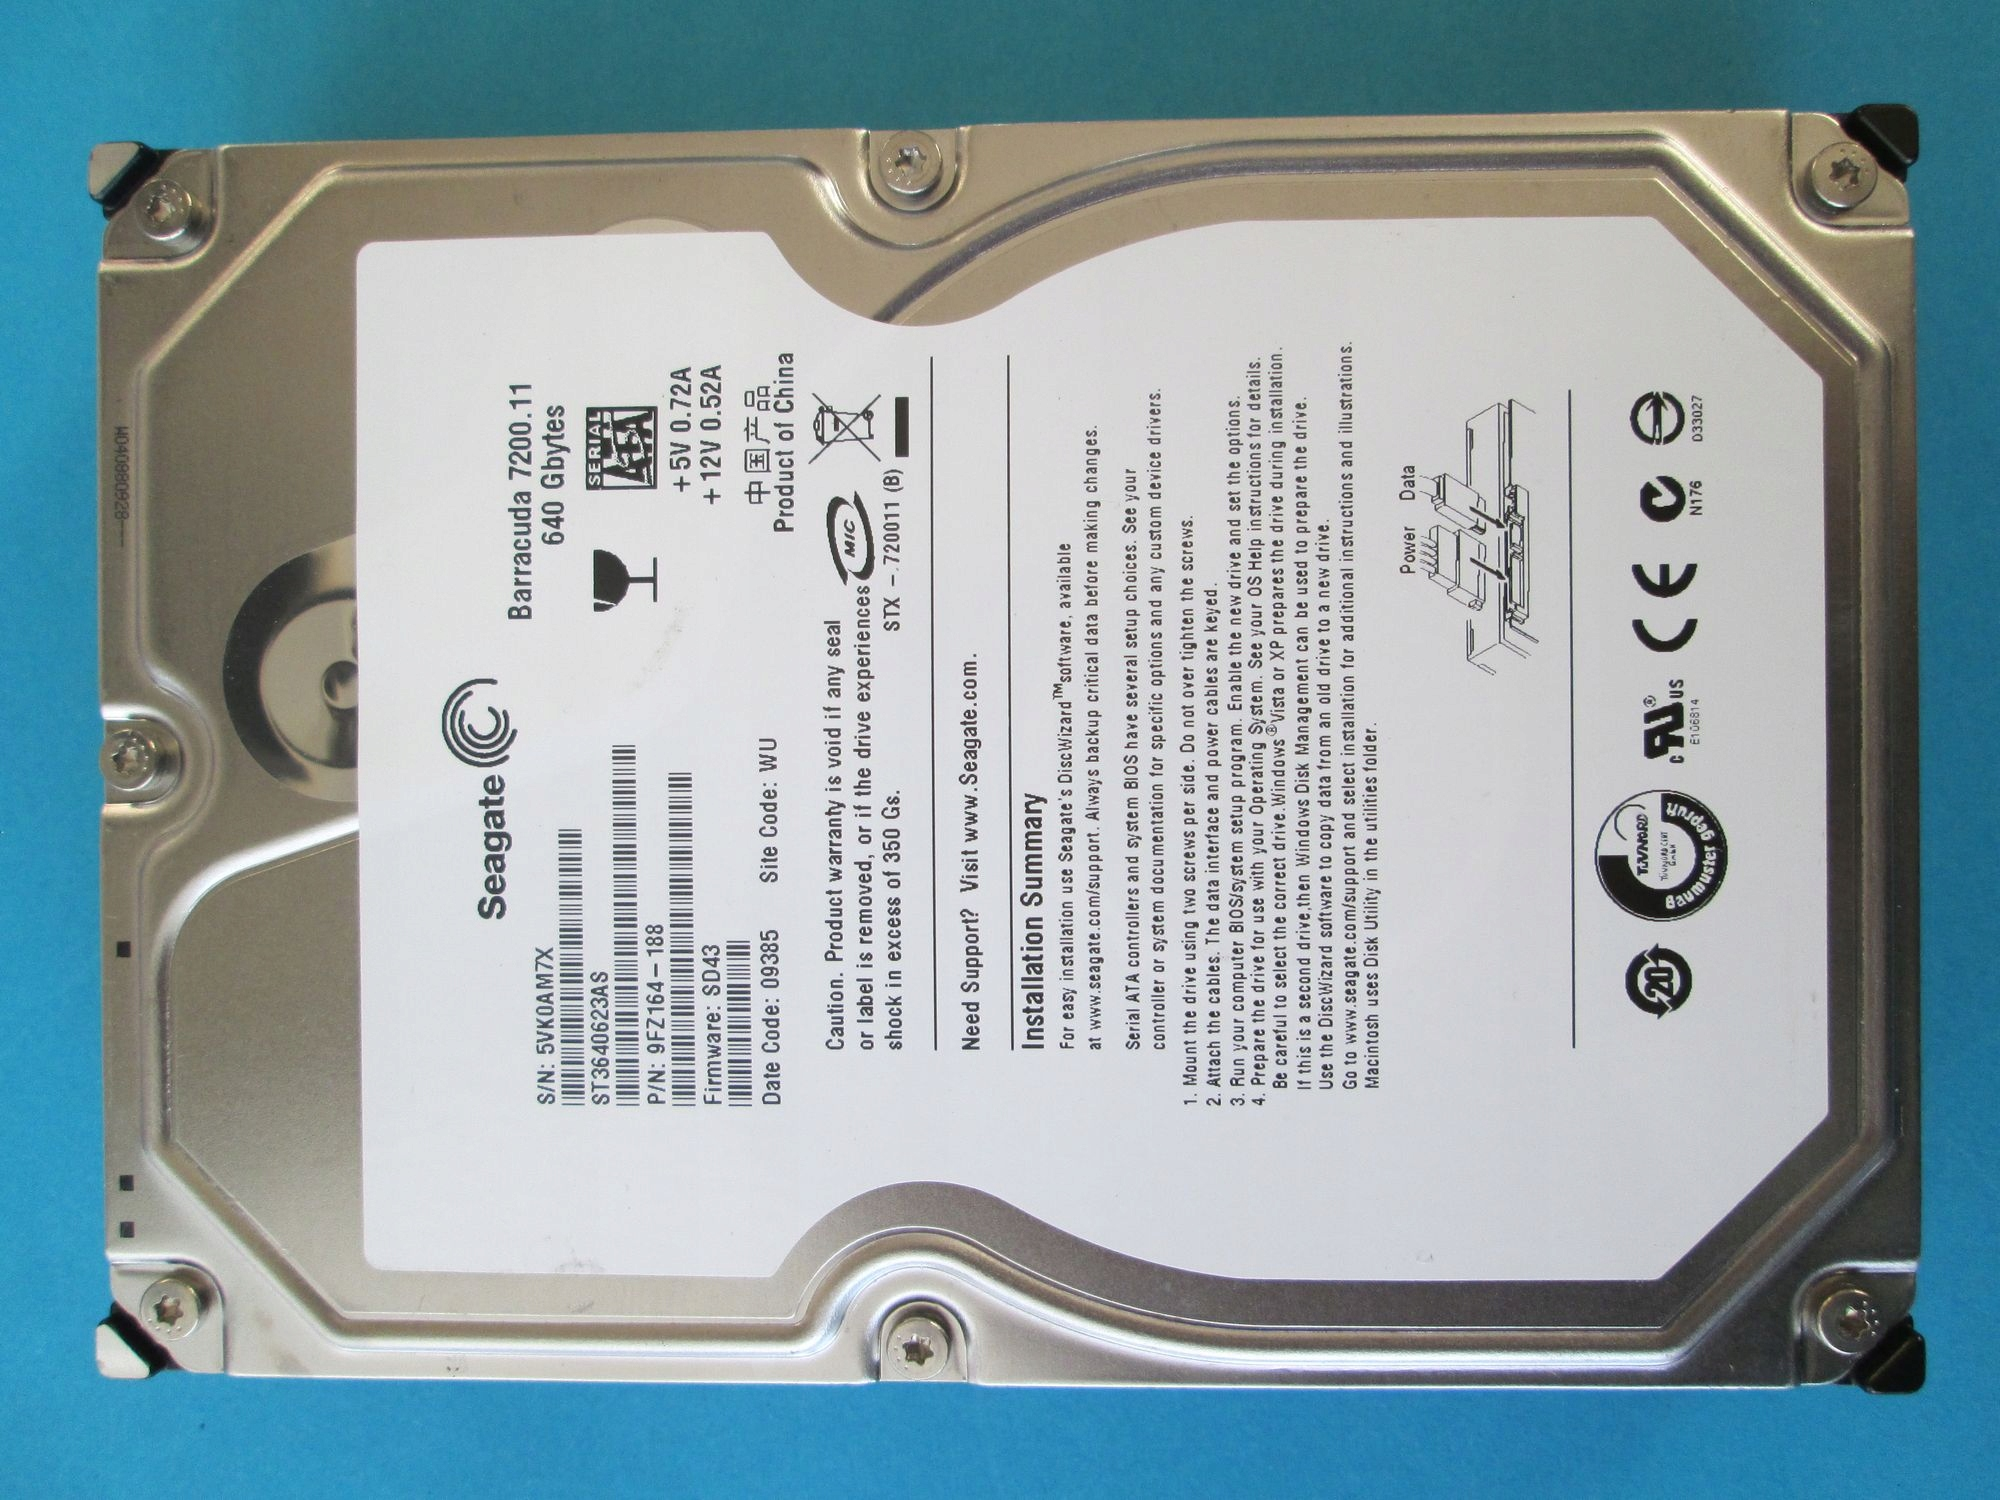 SEAGATE BARRACUDA 7200.11 ST3640623AS WINDOWS 8.1 DRIVER DOWNLOAD